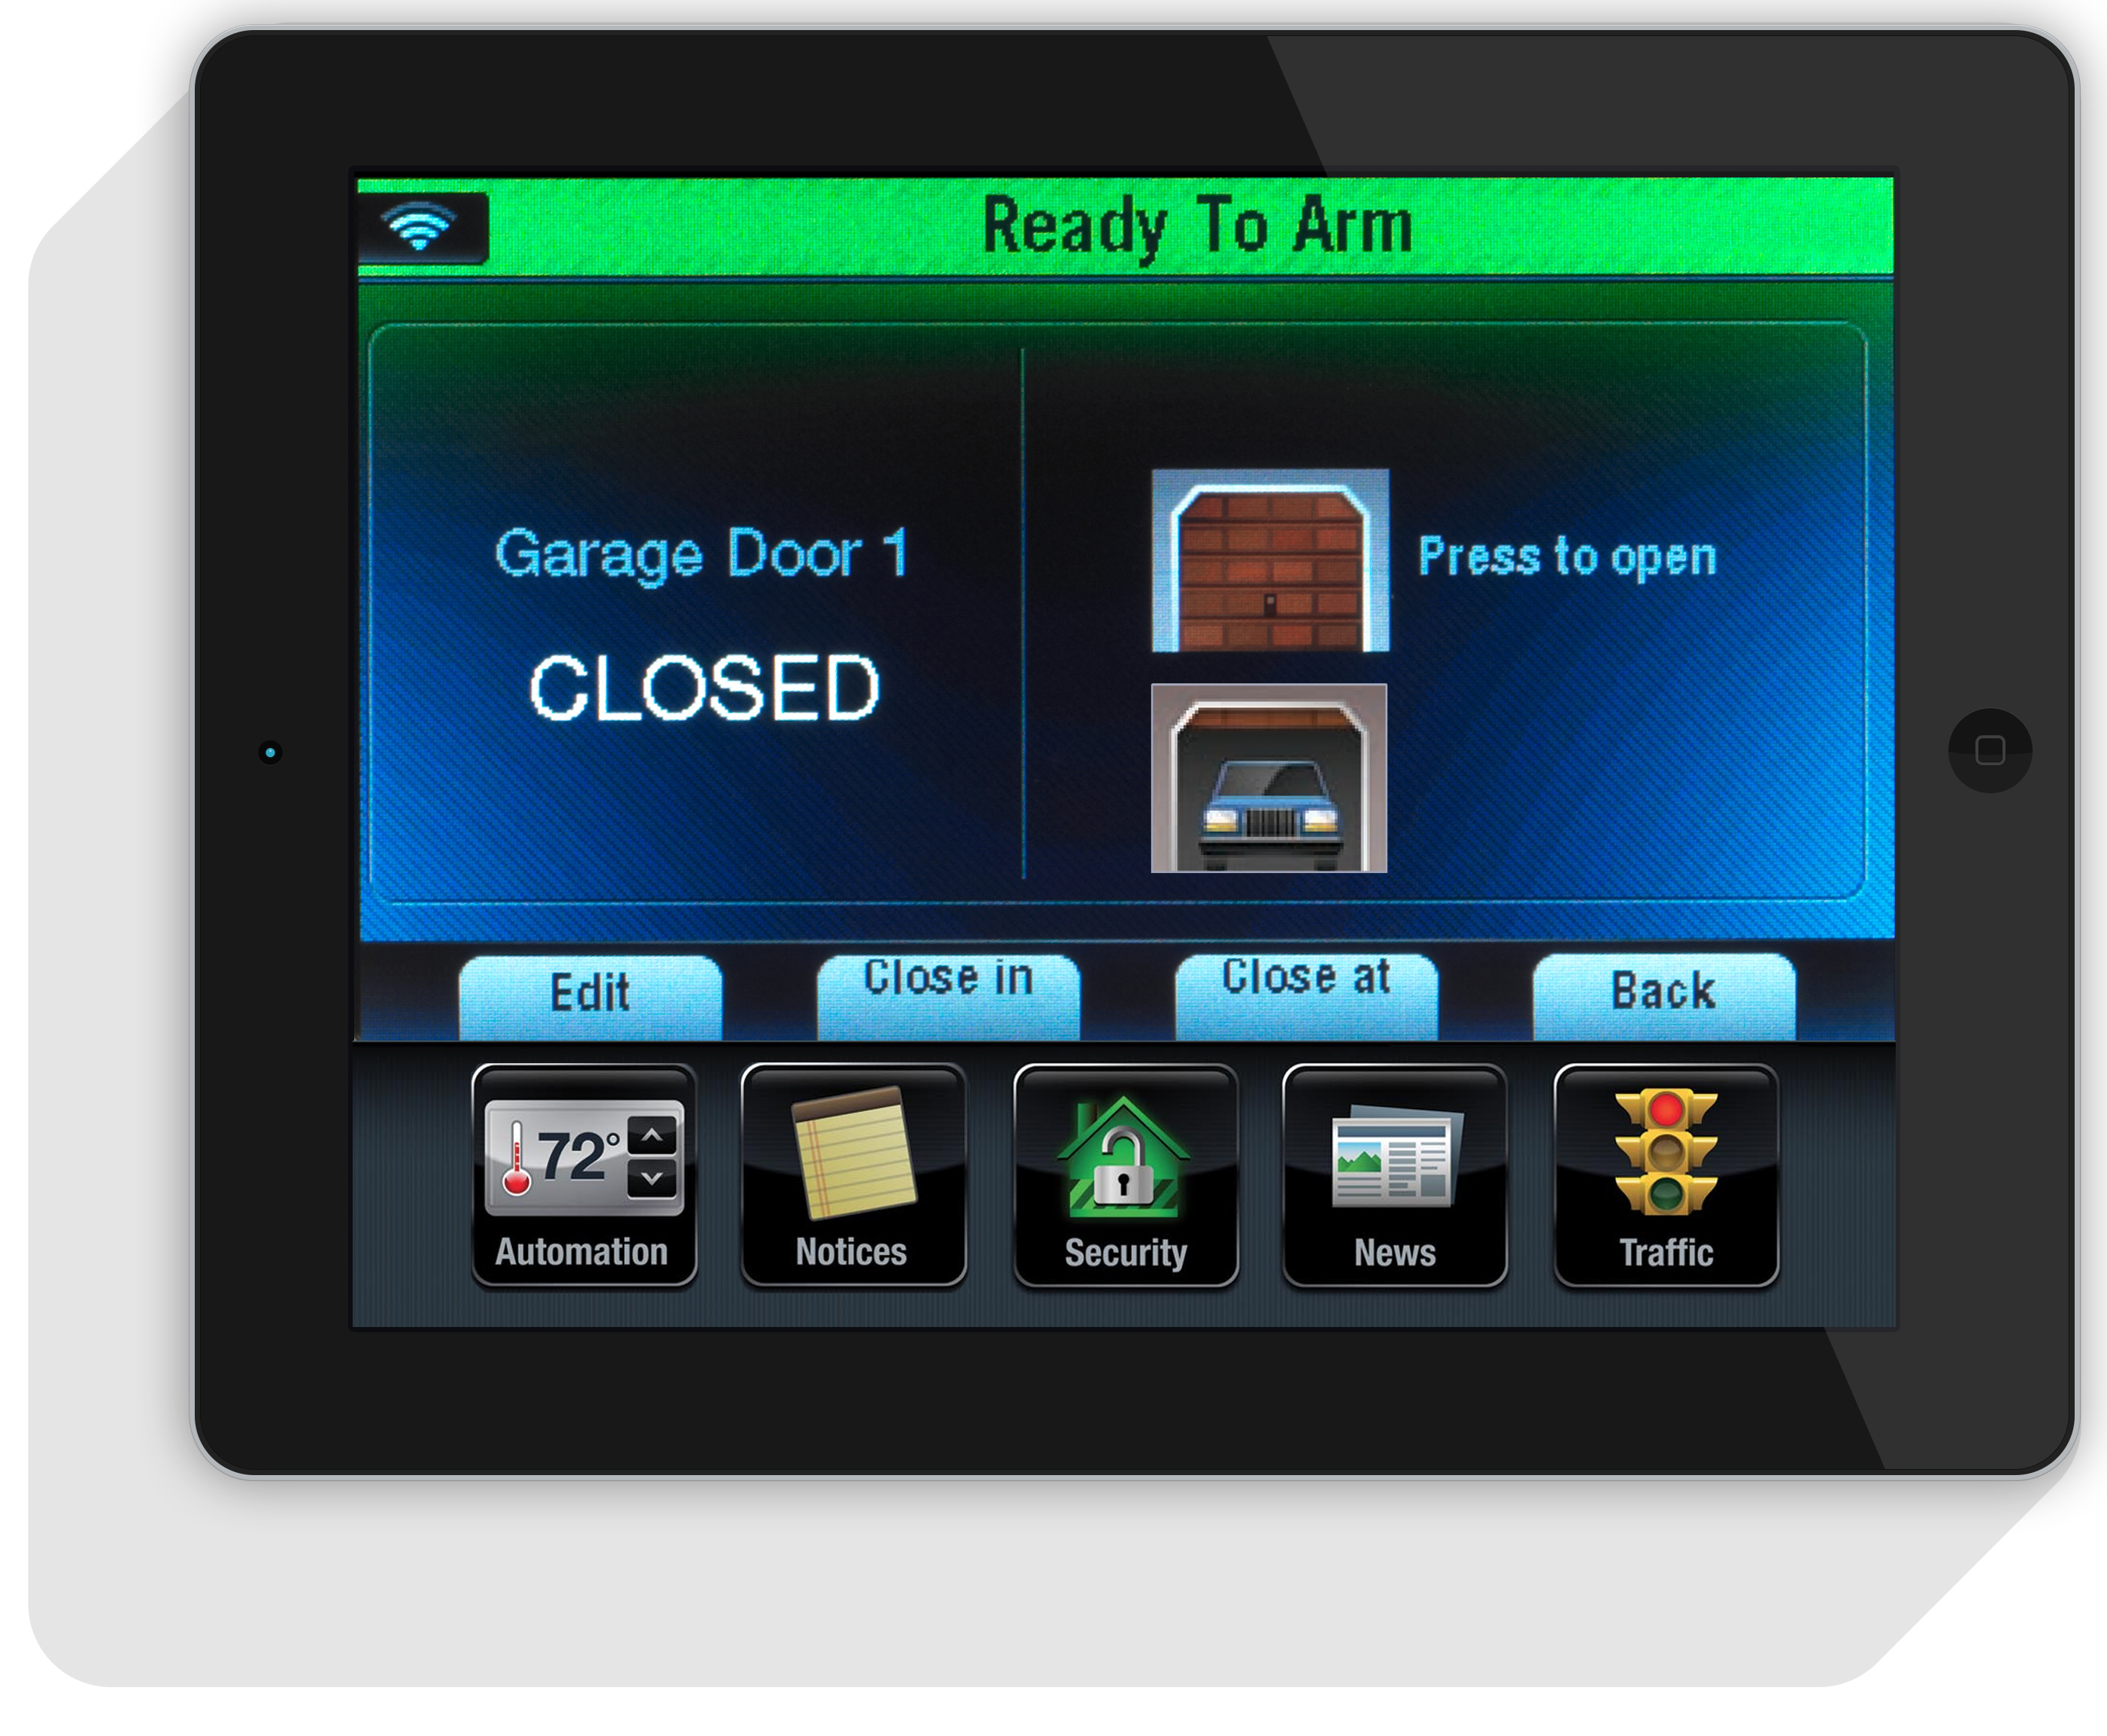 ... Of Your Bed On Your Tablet Or Smart Phone. On Vacation And Worried  About Your Home? Now You Can Know The Status Of Your Garage Door At All  Times.